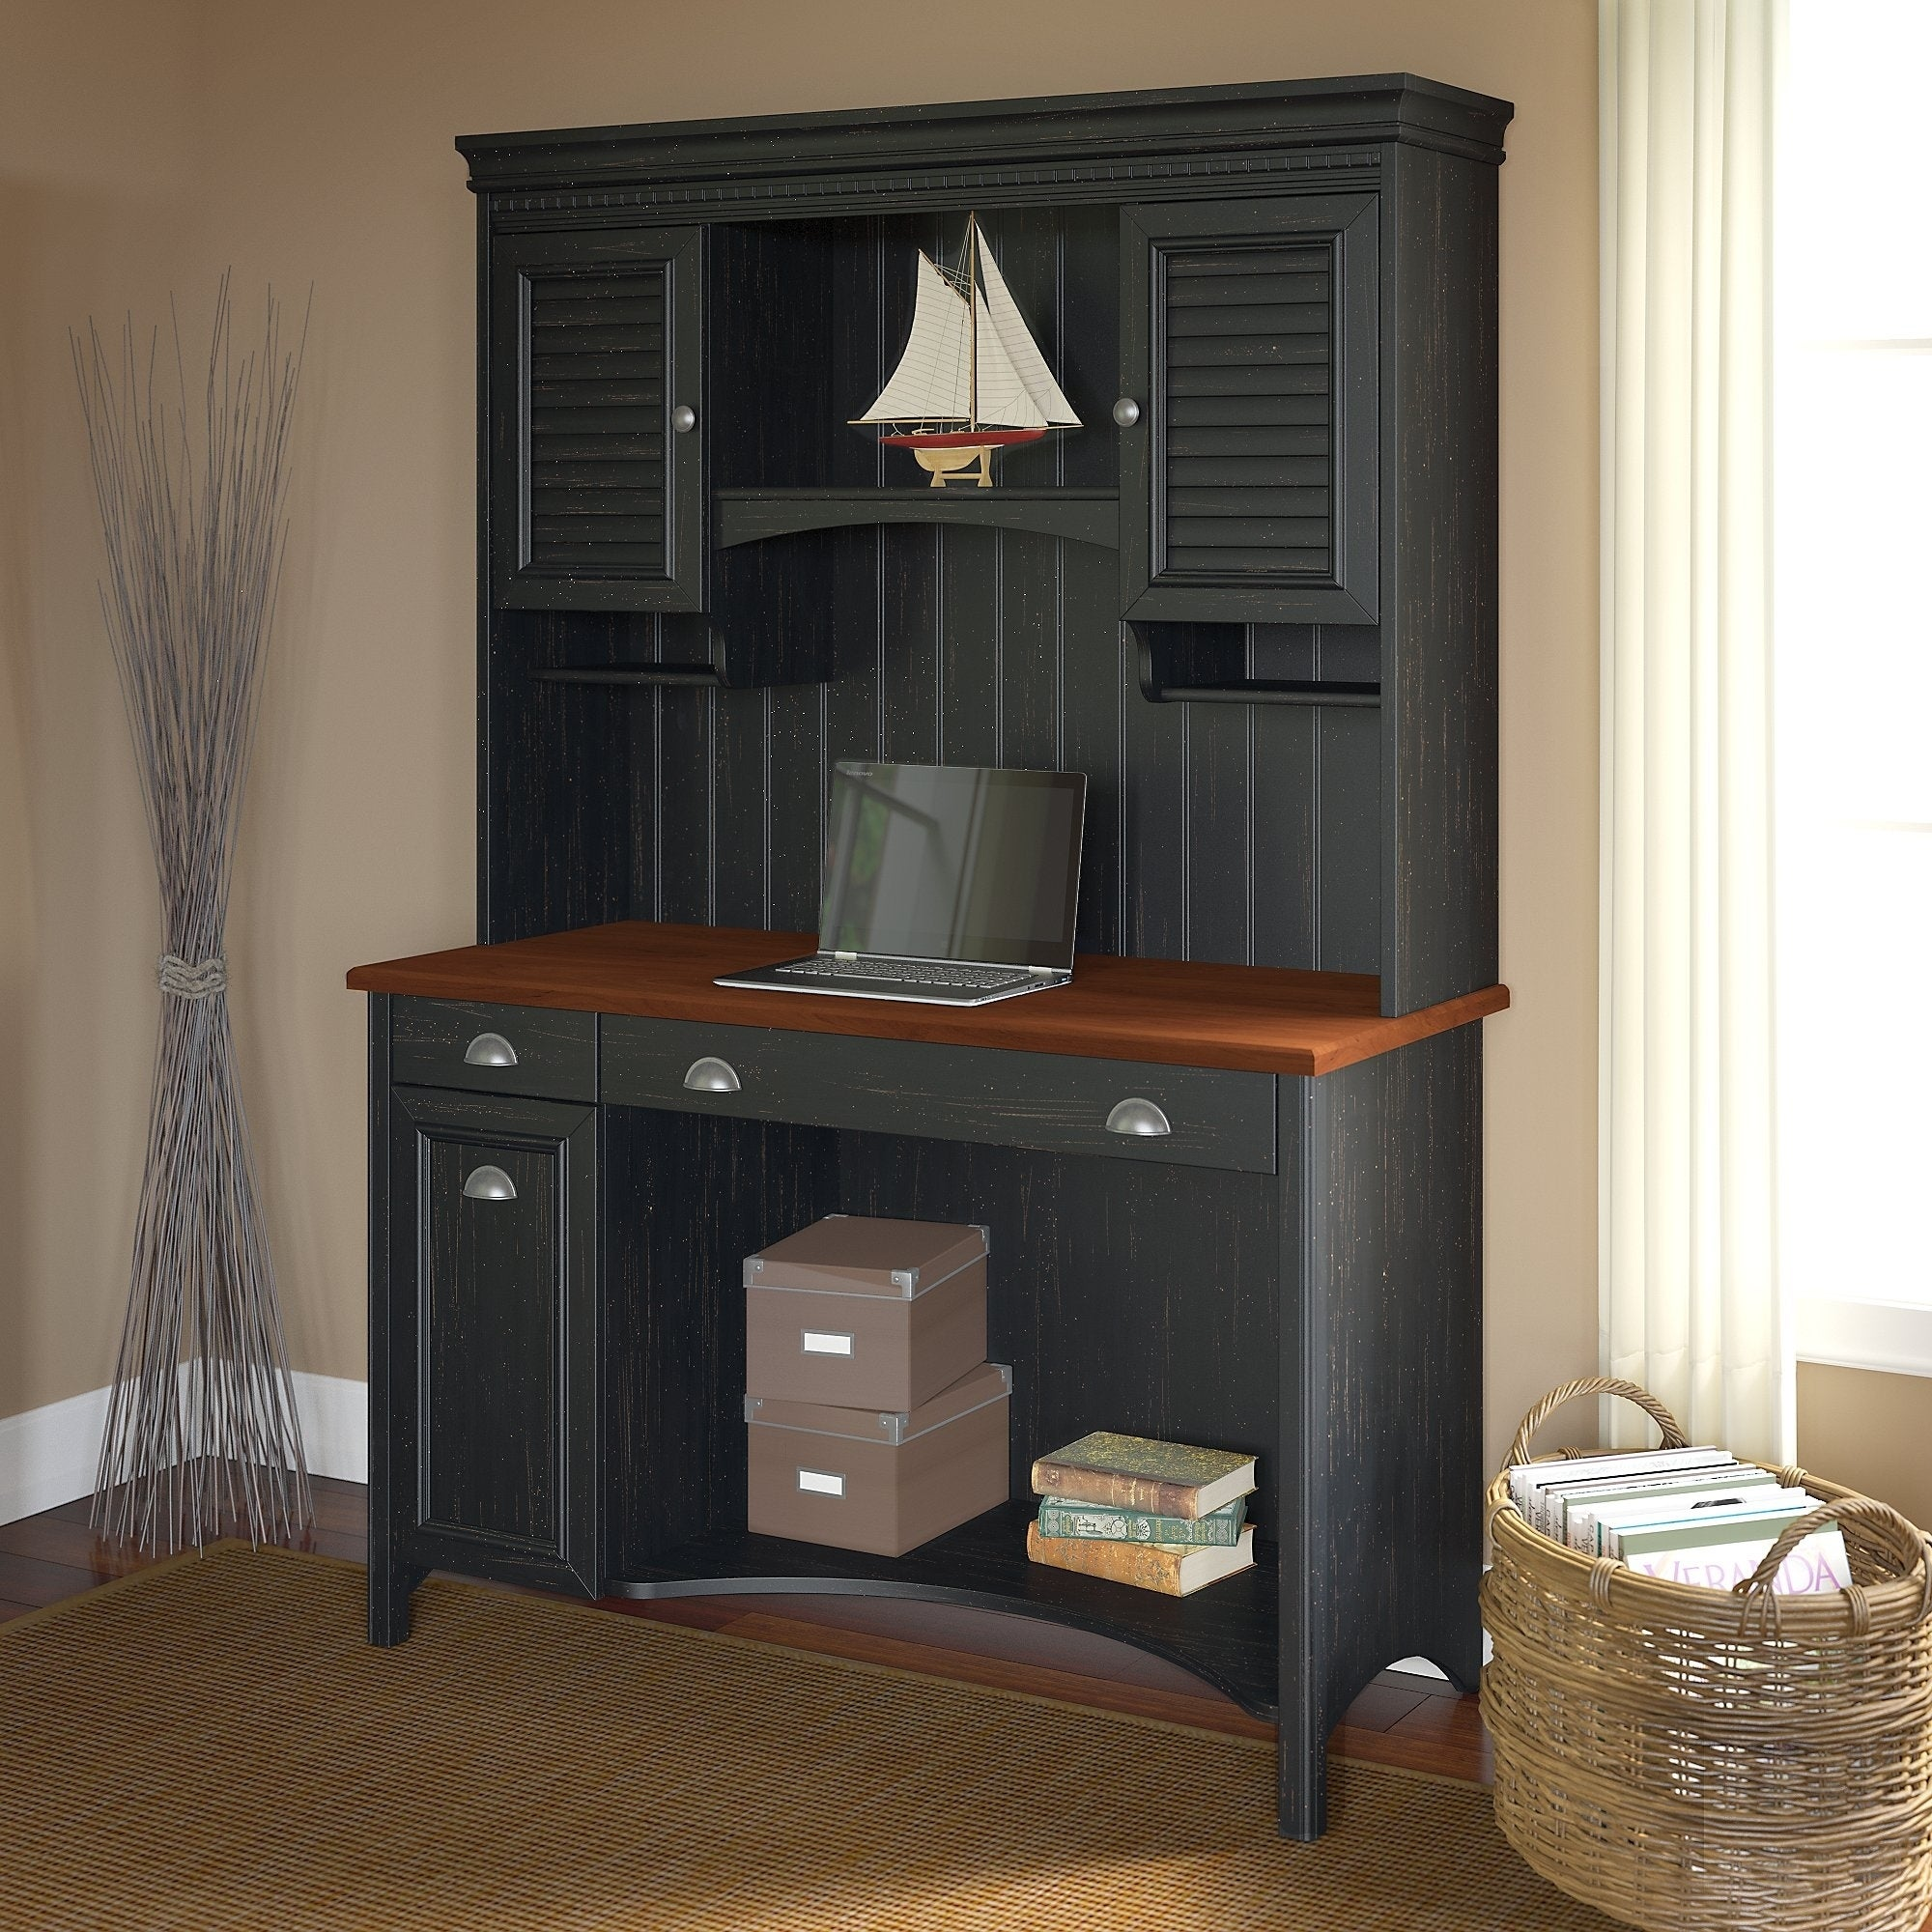 Shop Black Friday Deals On Copper Grove Samtredia Computer Desk With Hutch In Antique Black Overstock 8935629